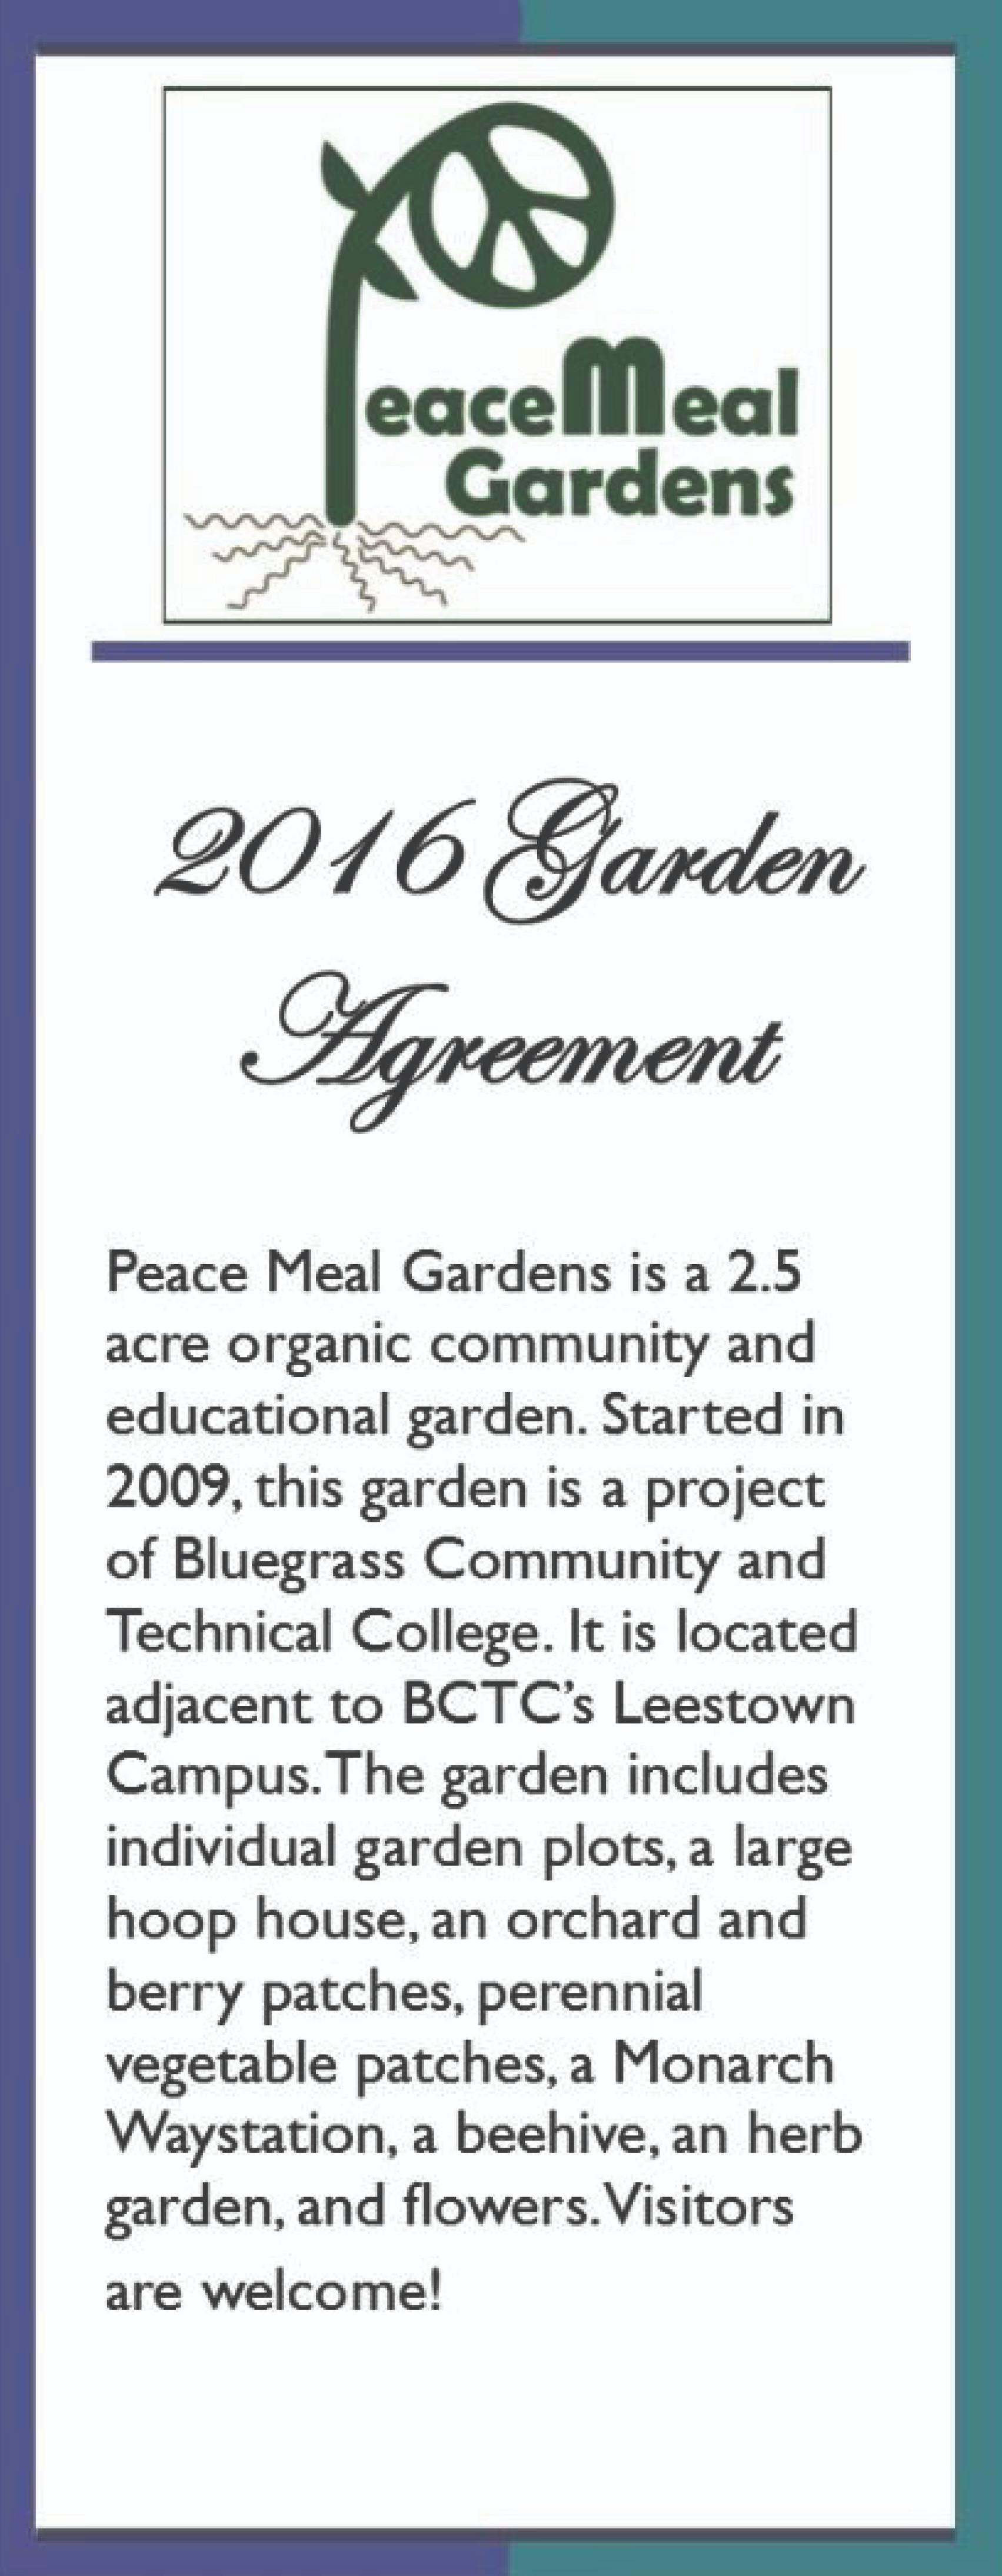 Peace Meal Gardens Agreement 2016